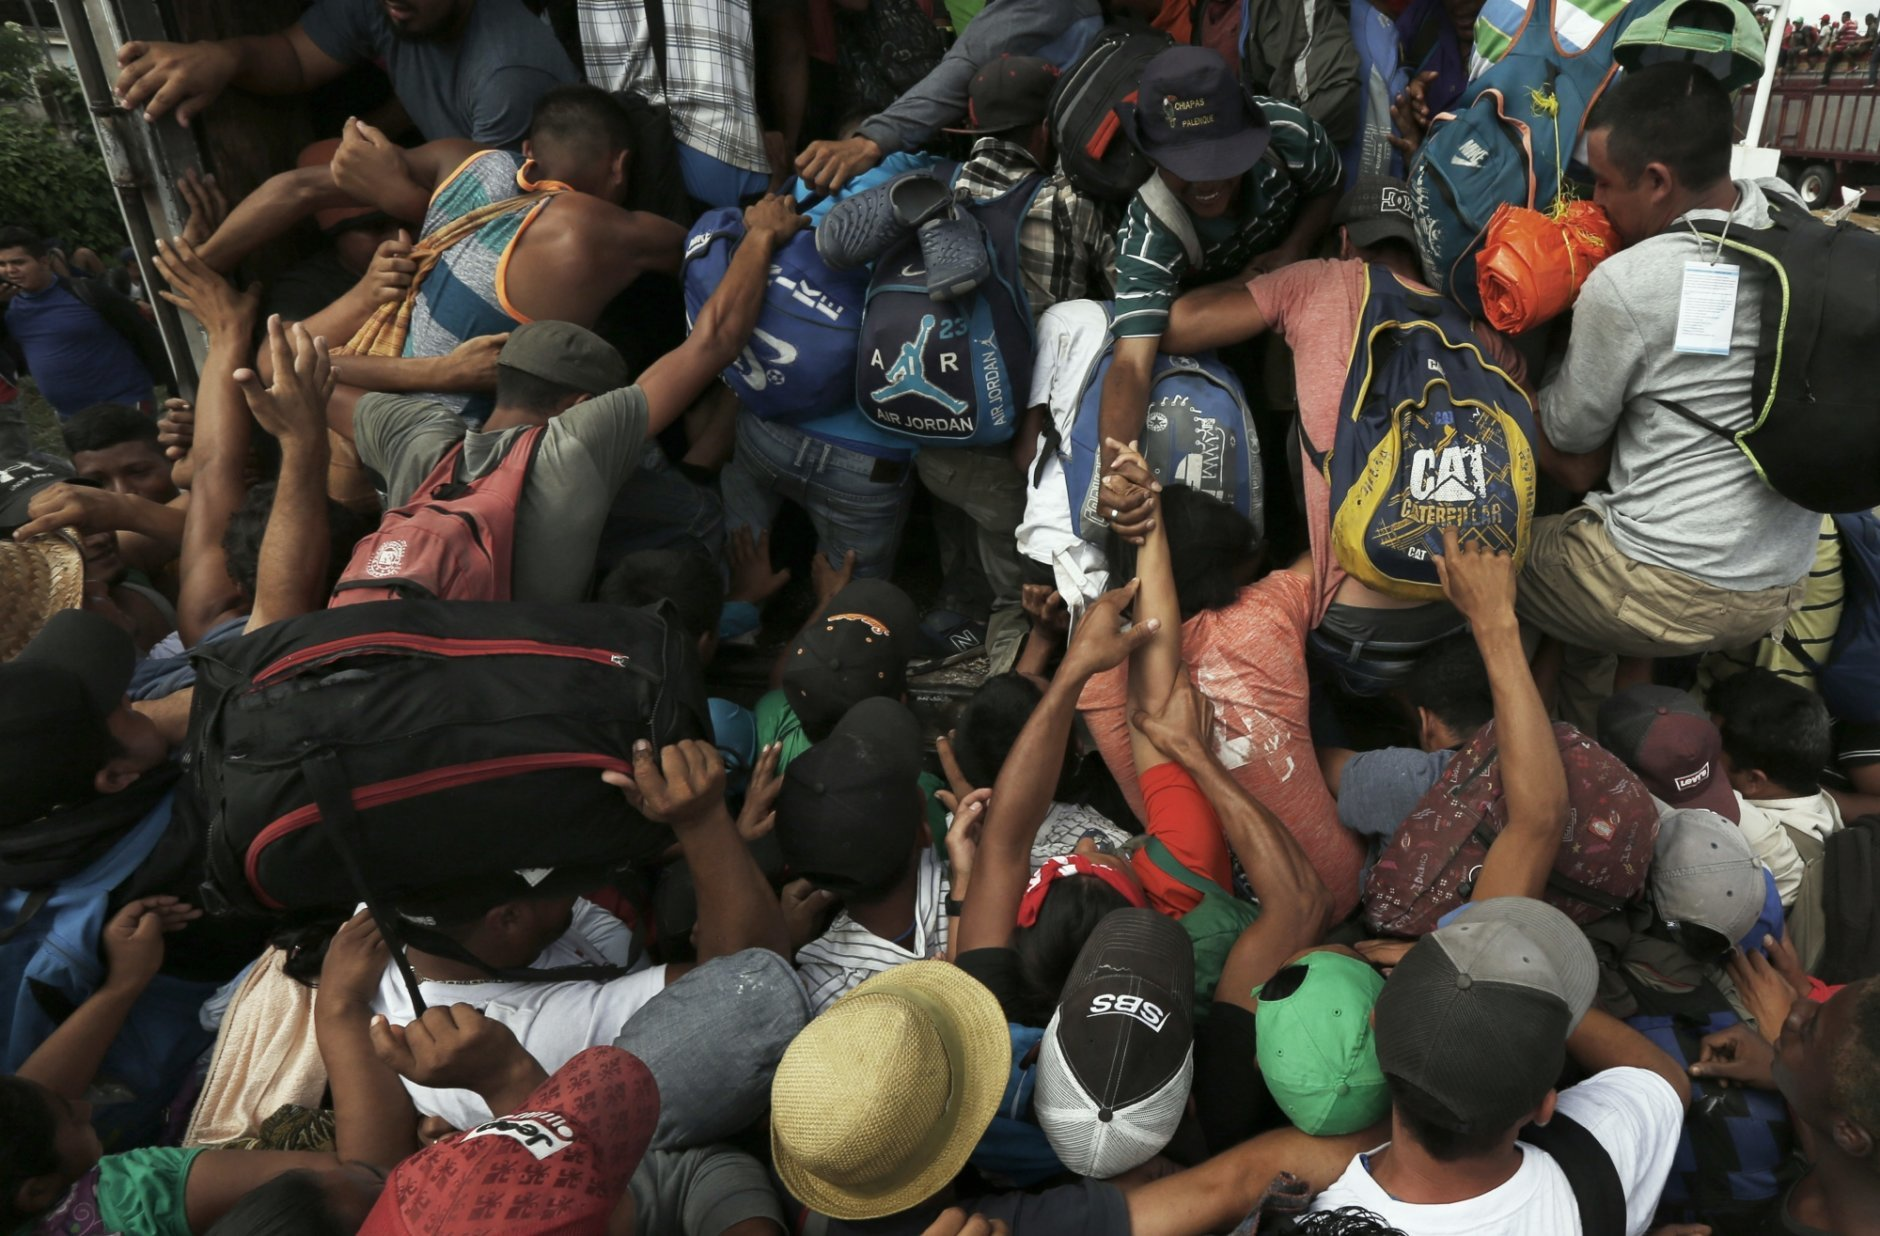 Central American migrants, part of the caravan hoping to reach the U.S. border, scramble to get a ride on a truck, in Isla, Veracruz state, Mexico, Saturday, Nov. 3, 2018. The 150 buses that the Governor of Veracruz promised to the Central American migrants to get to Mexico City, did not arrive. (AP Photo/Marco Ugarte)